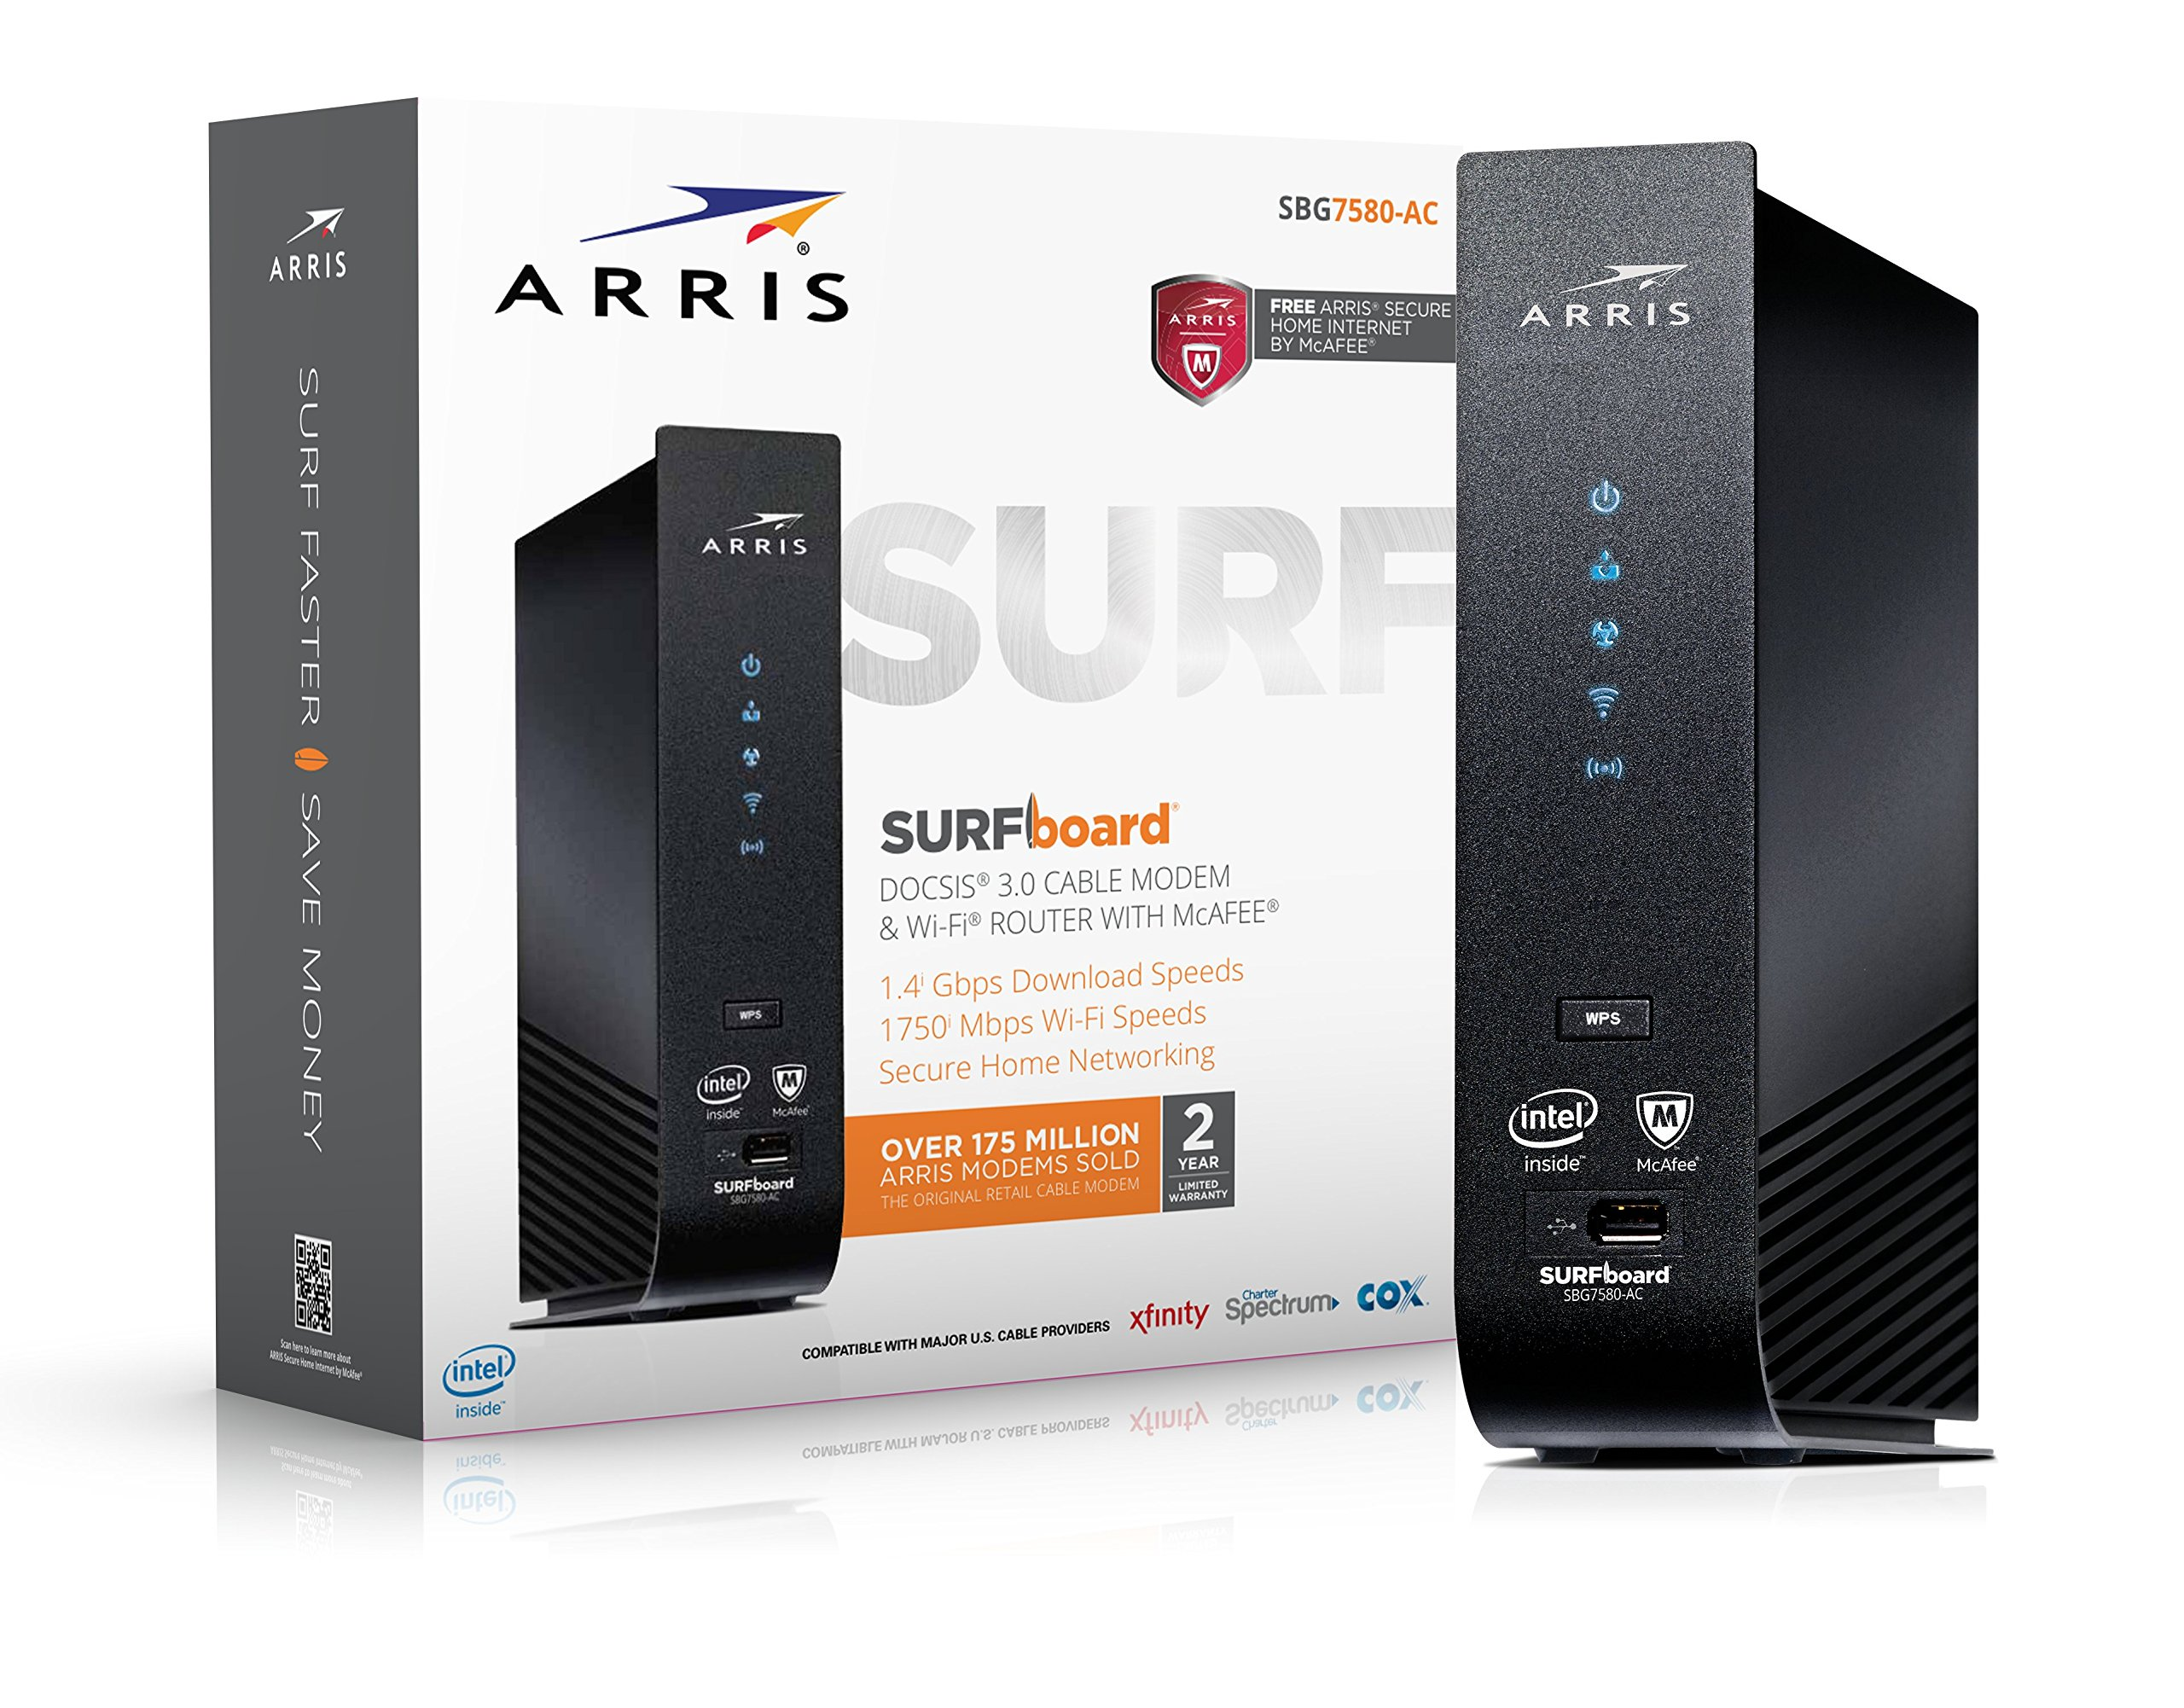 ARRIS SURFboard SBG7580AC-McAfee DOCSIS 3.0 Cable Modem / AC1750 Wi-Fi Router with FREE Secure Home Internet by McAfee - Retail Packaging, Black